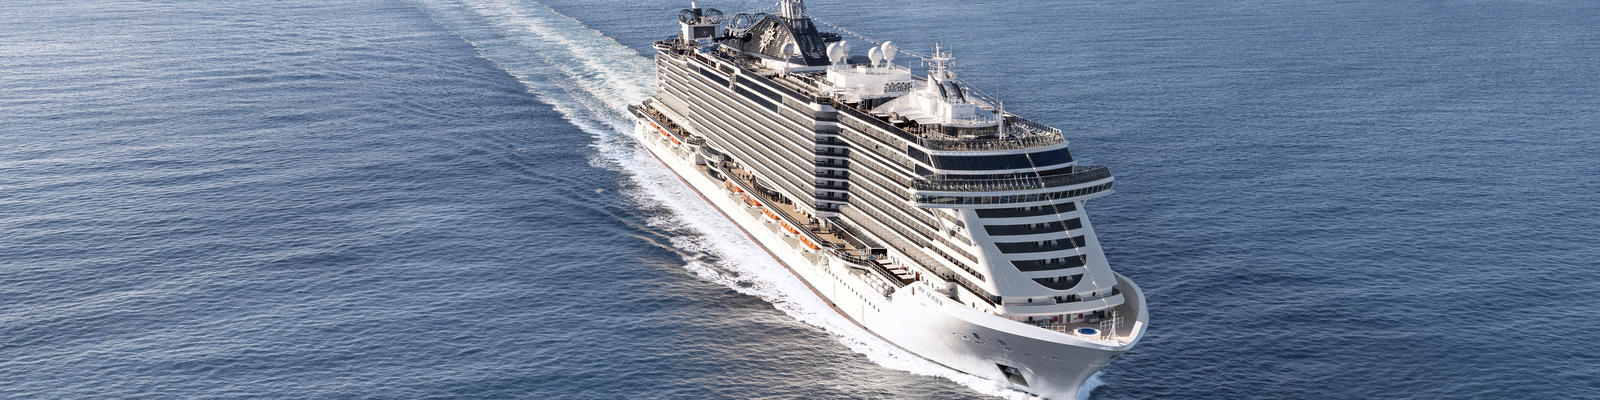 MSC Seaview Itineraries: 2020 & 2021 Schedule (with Prices ...